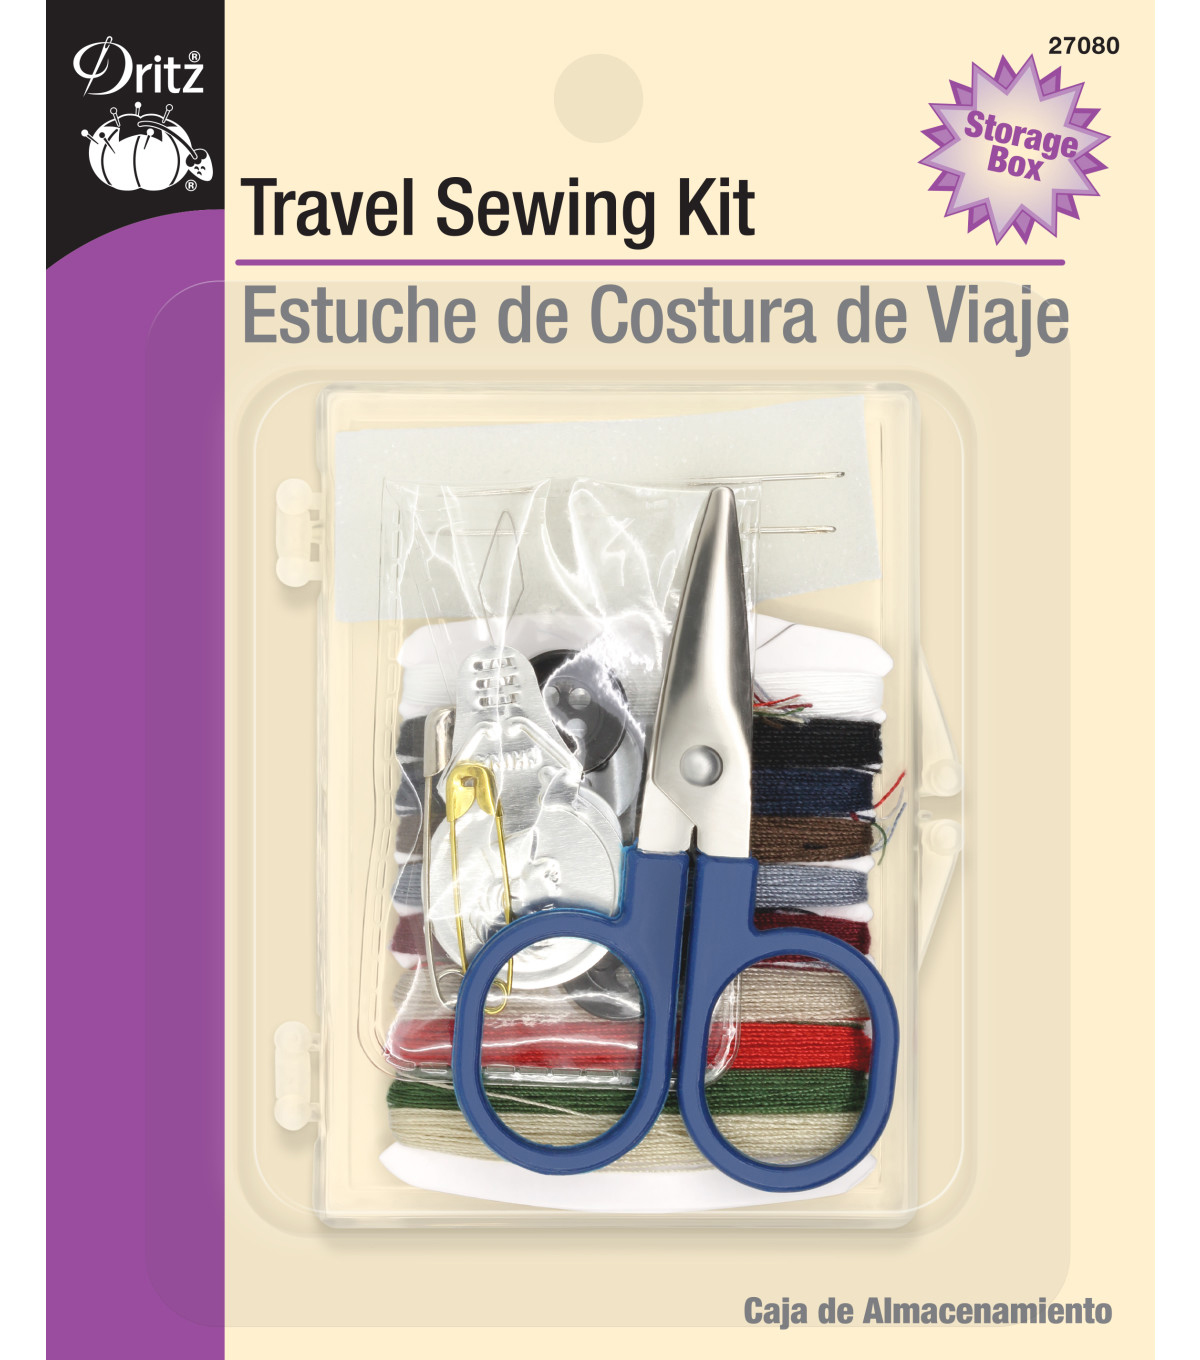 Dritz Sewing Kit with Scissors